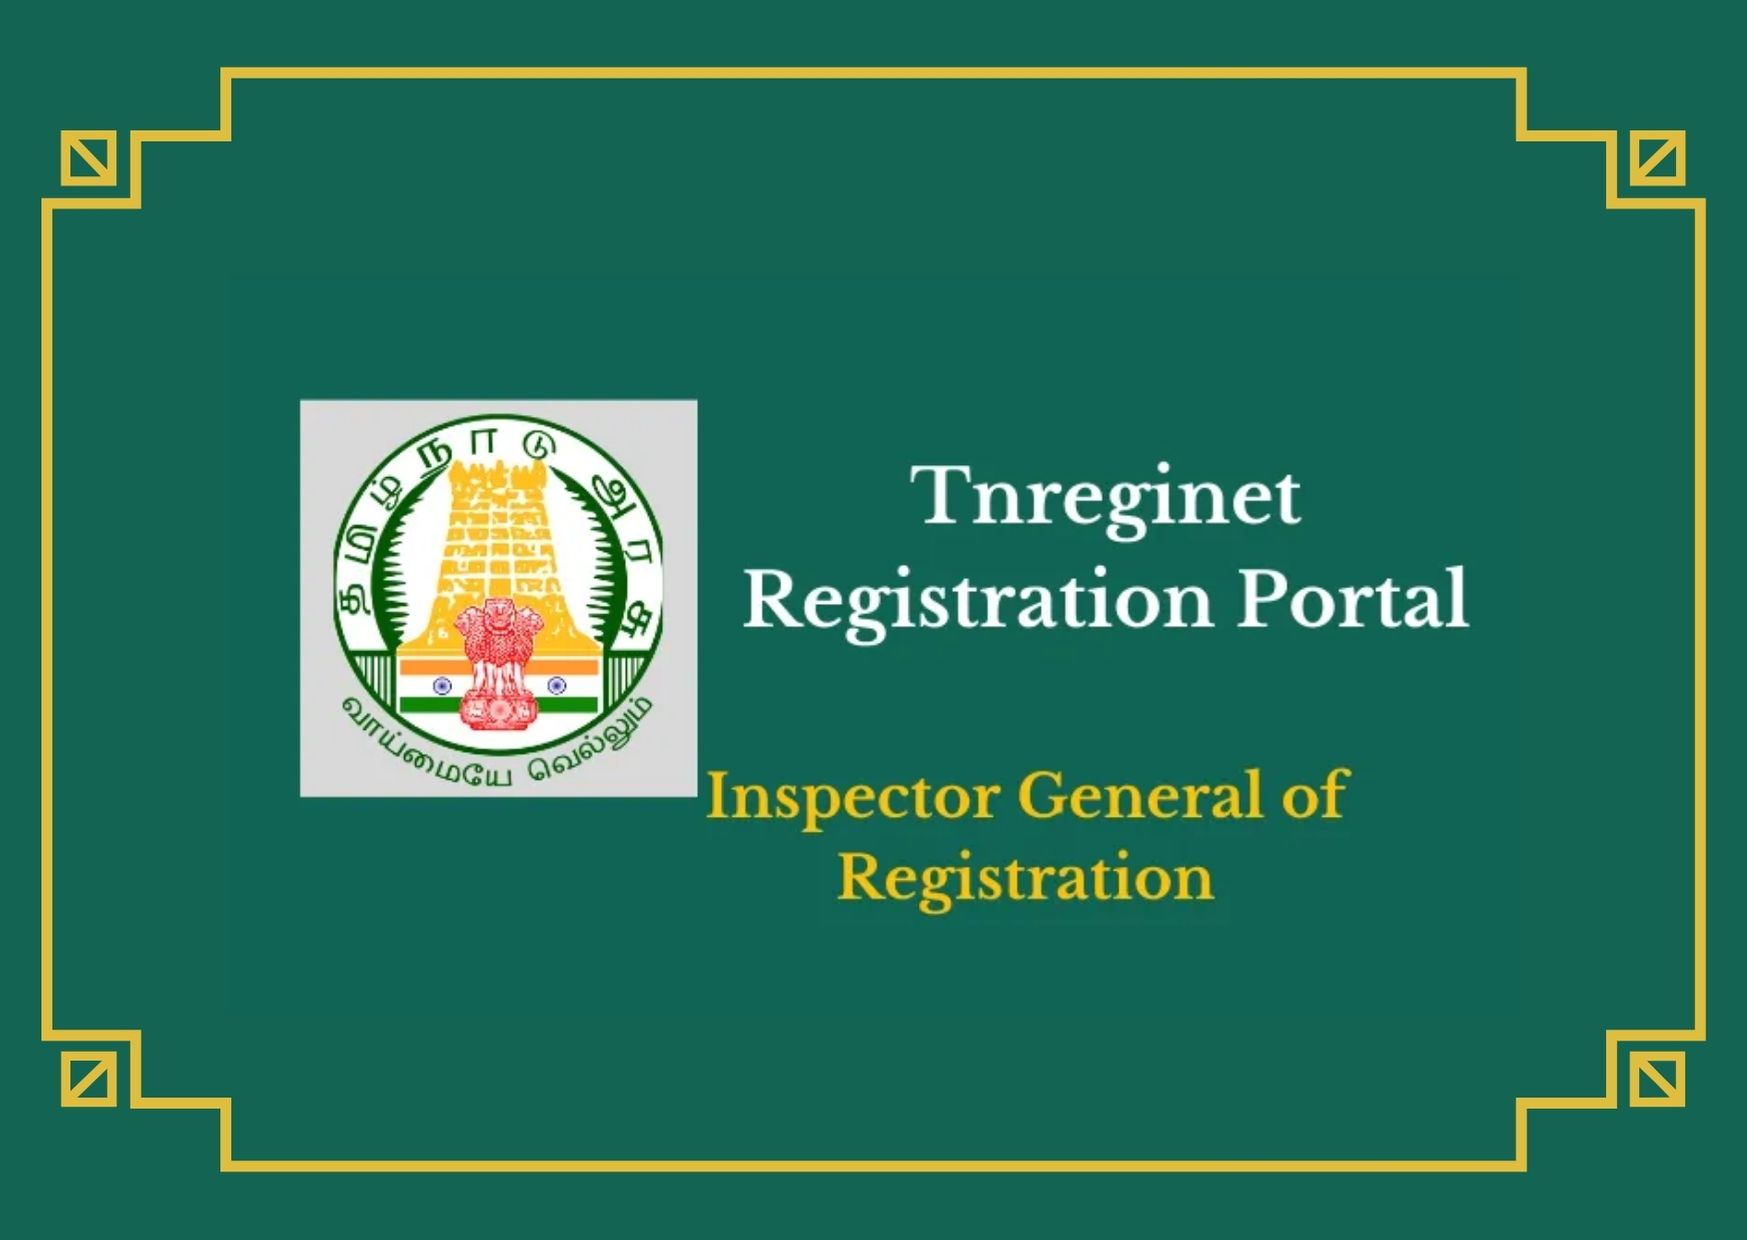 TNREGINET Inspector General of Registration (IGRS)